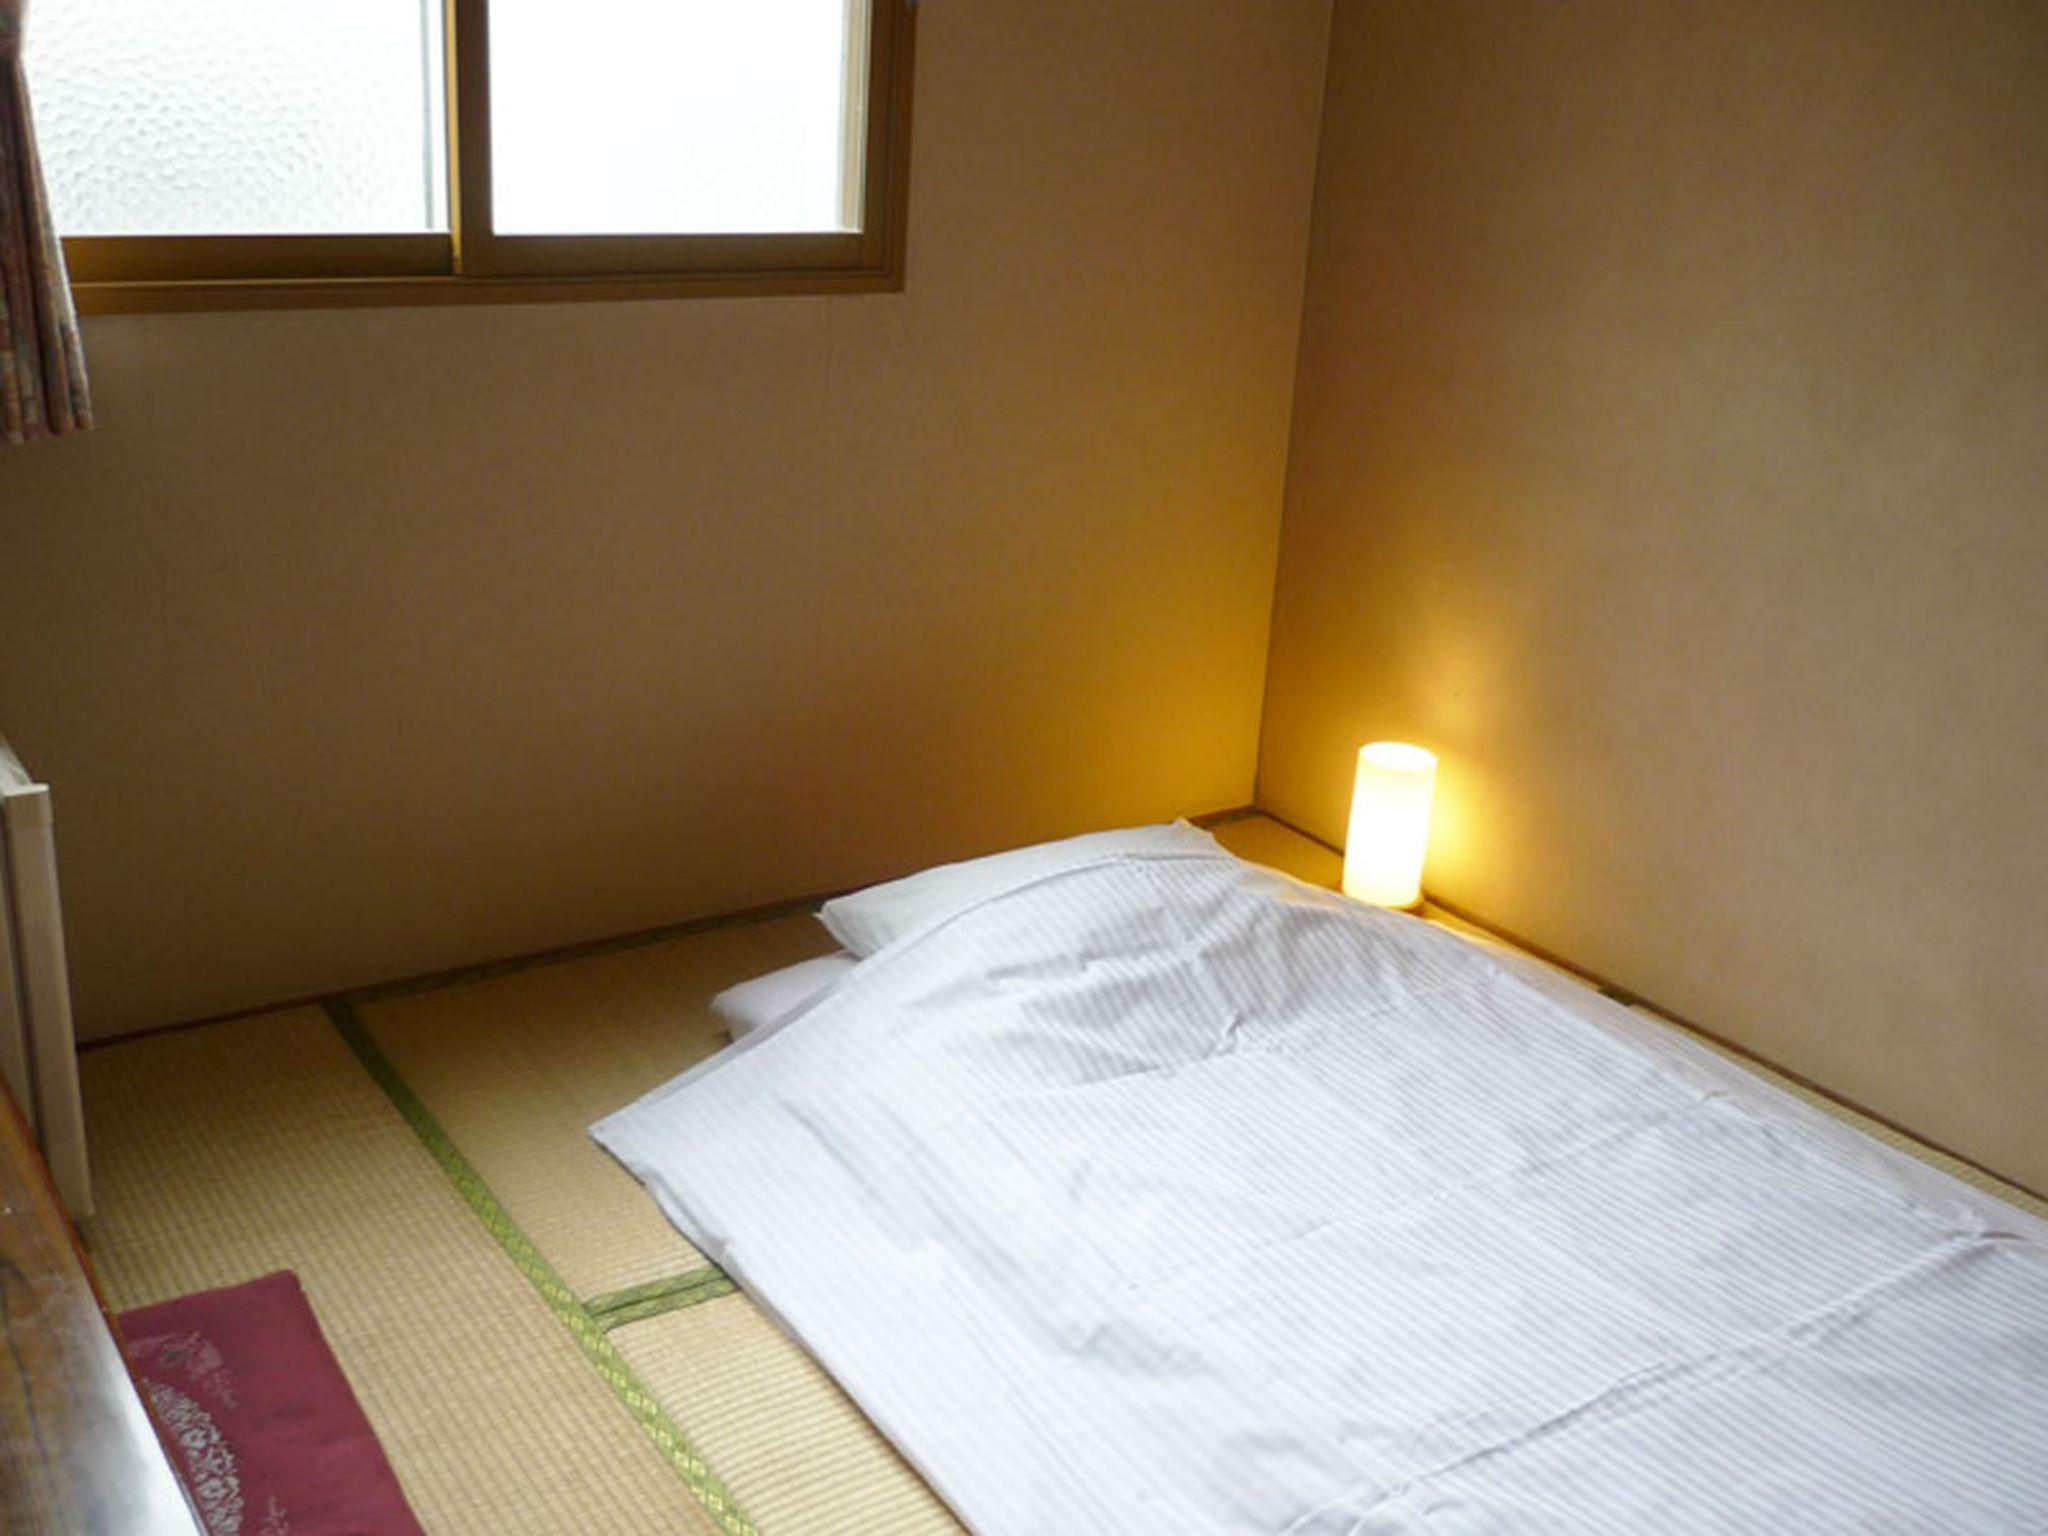 Habitación de estilo japonés para 1 persona (Japanese Style Room for 1 Person)